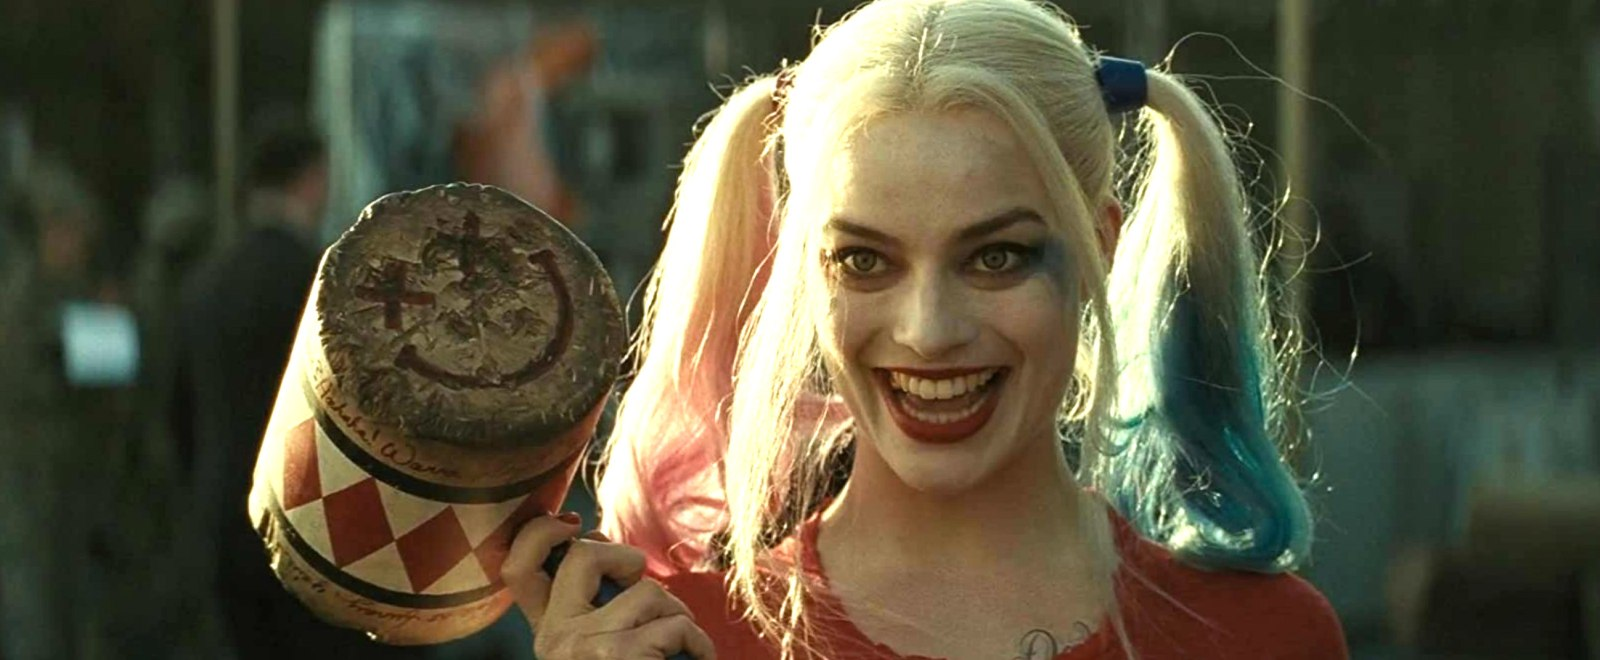 David Ayer Calls His 'Suicide Squad' Cut An 'Amazing Movie' That 'Scared The Sh*t' Out Of Executives